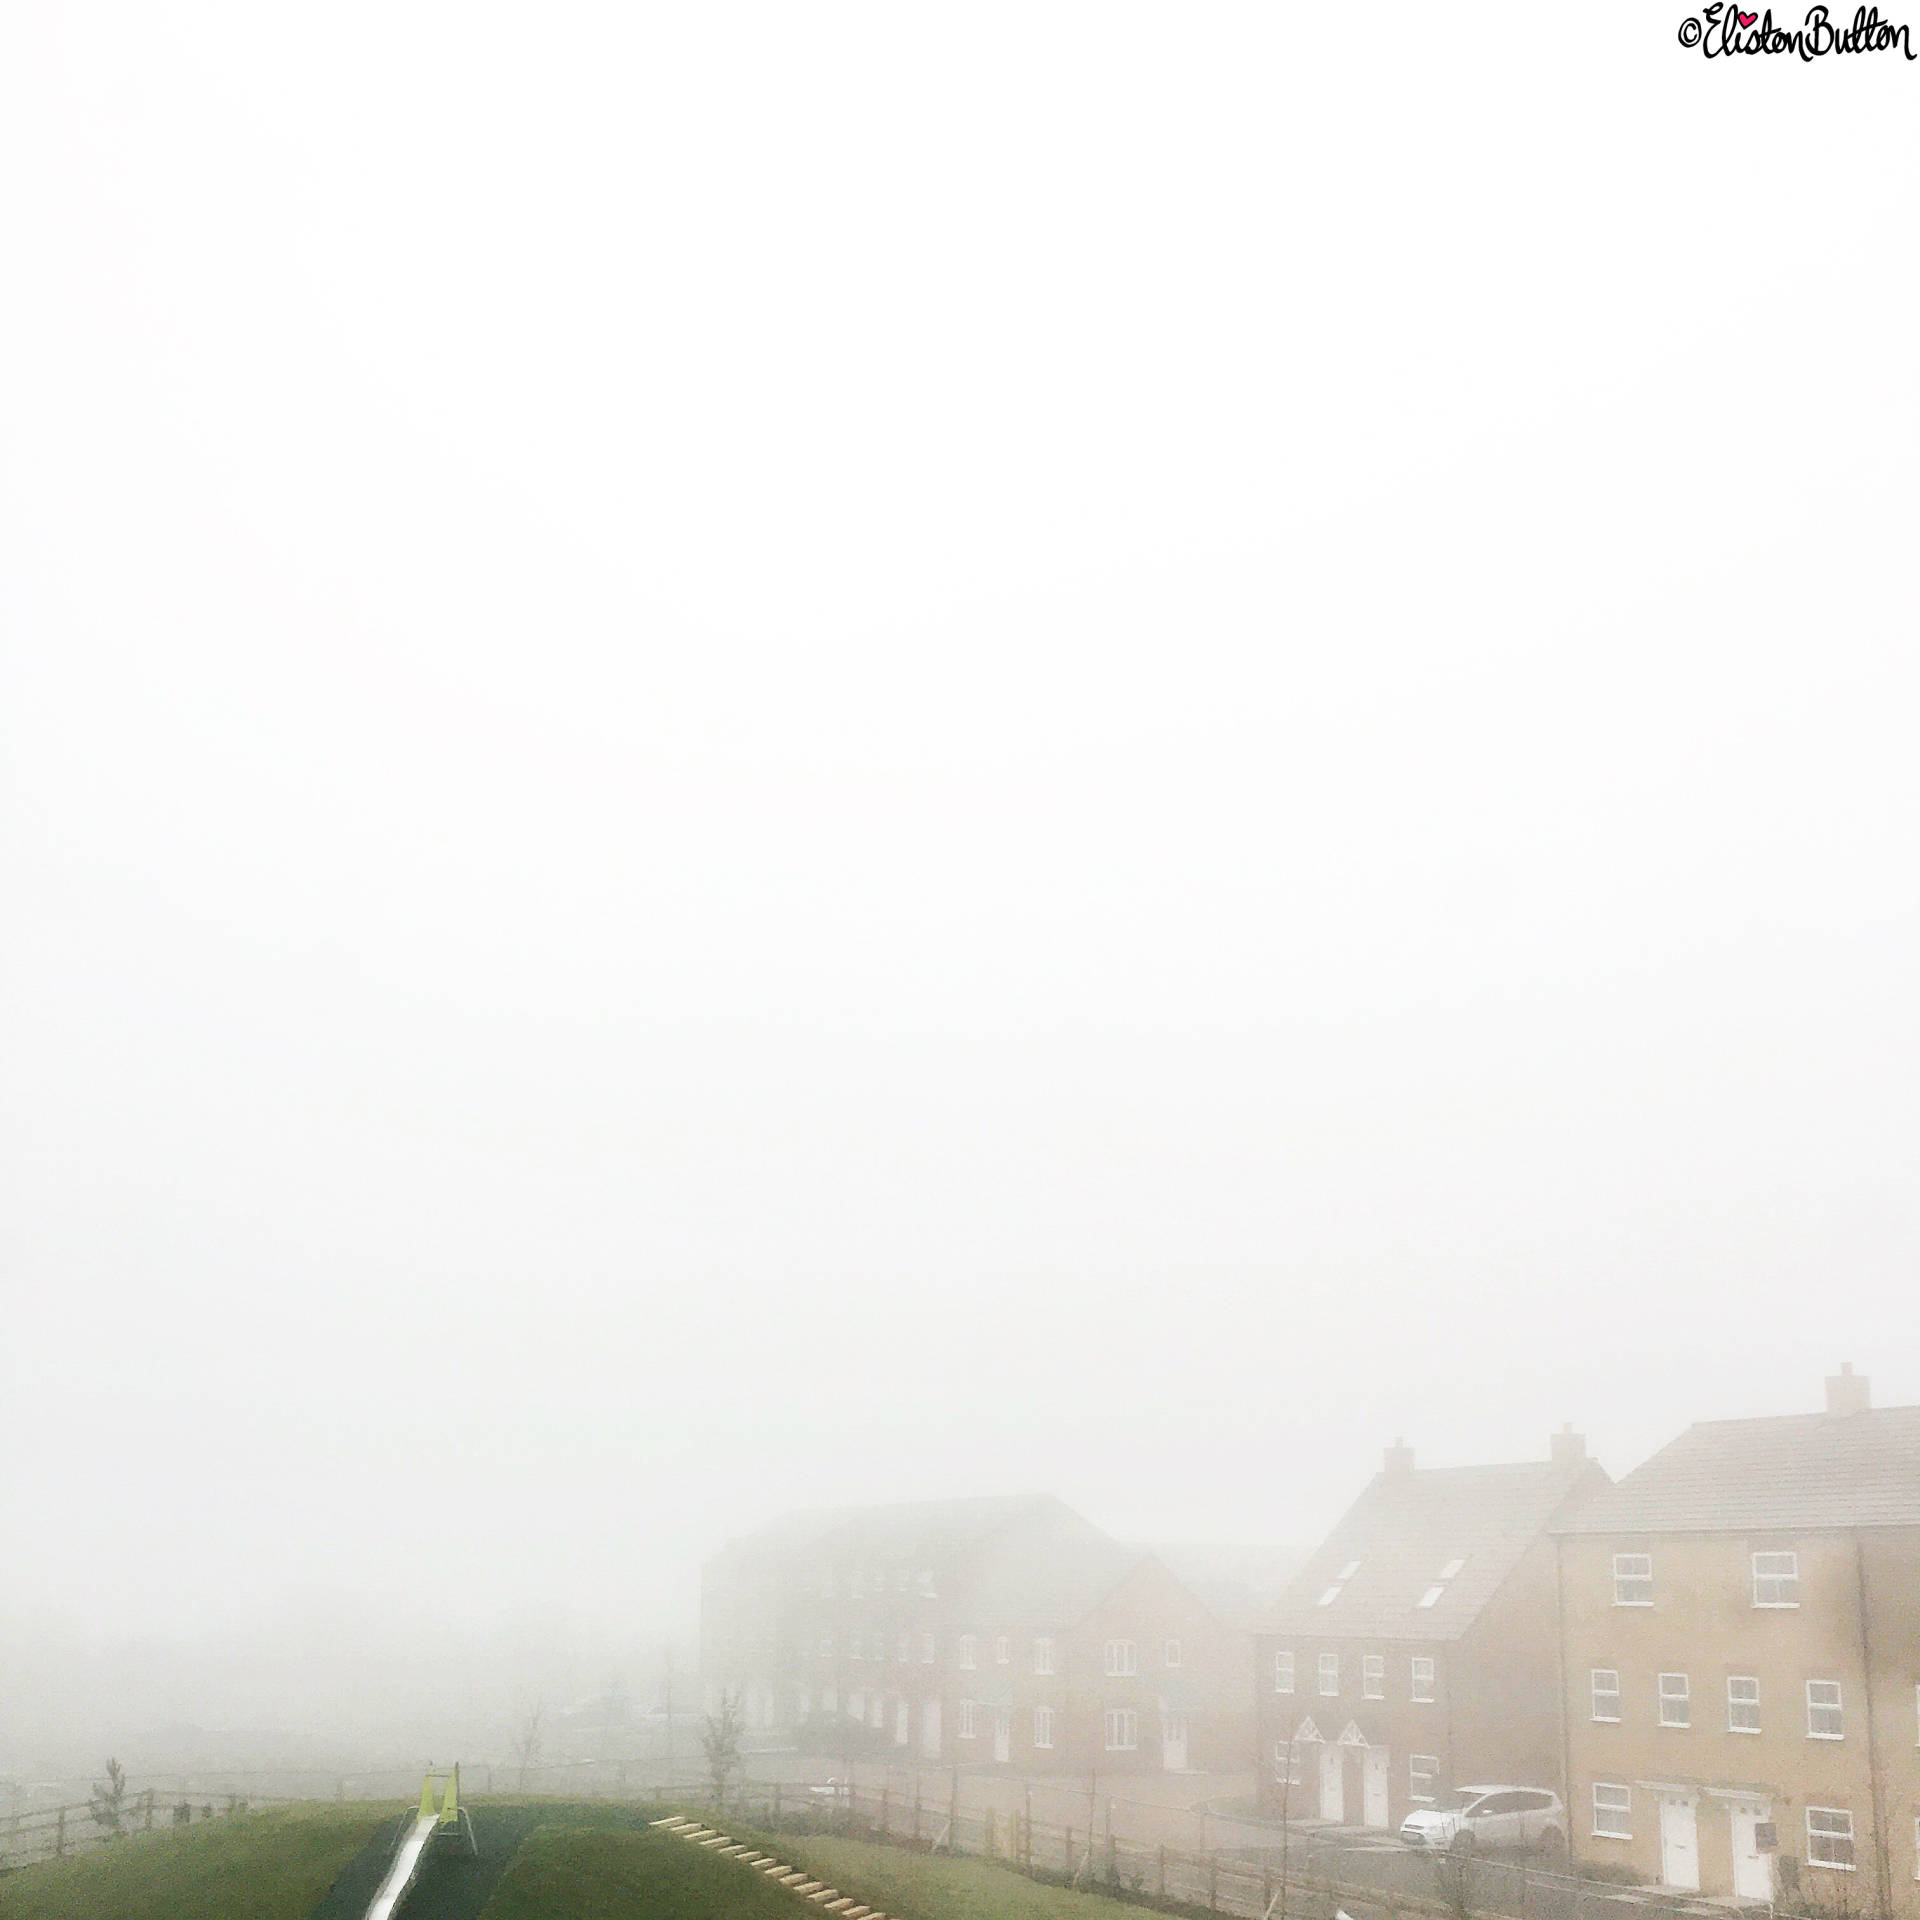 Day 11 - Clouds - Foggy Minimalist Photograph - Photo-a-Day – March 2016 at www.elistonbutton.com - Eliston Button - That Crafty Kid – Art, Design, Craft & Adventure.